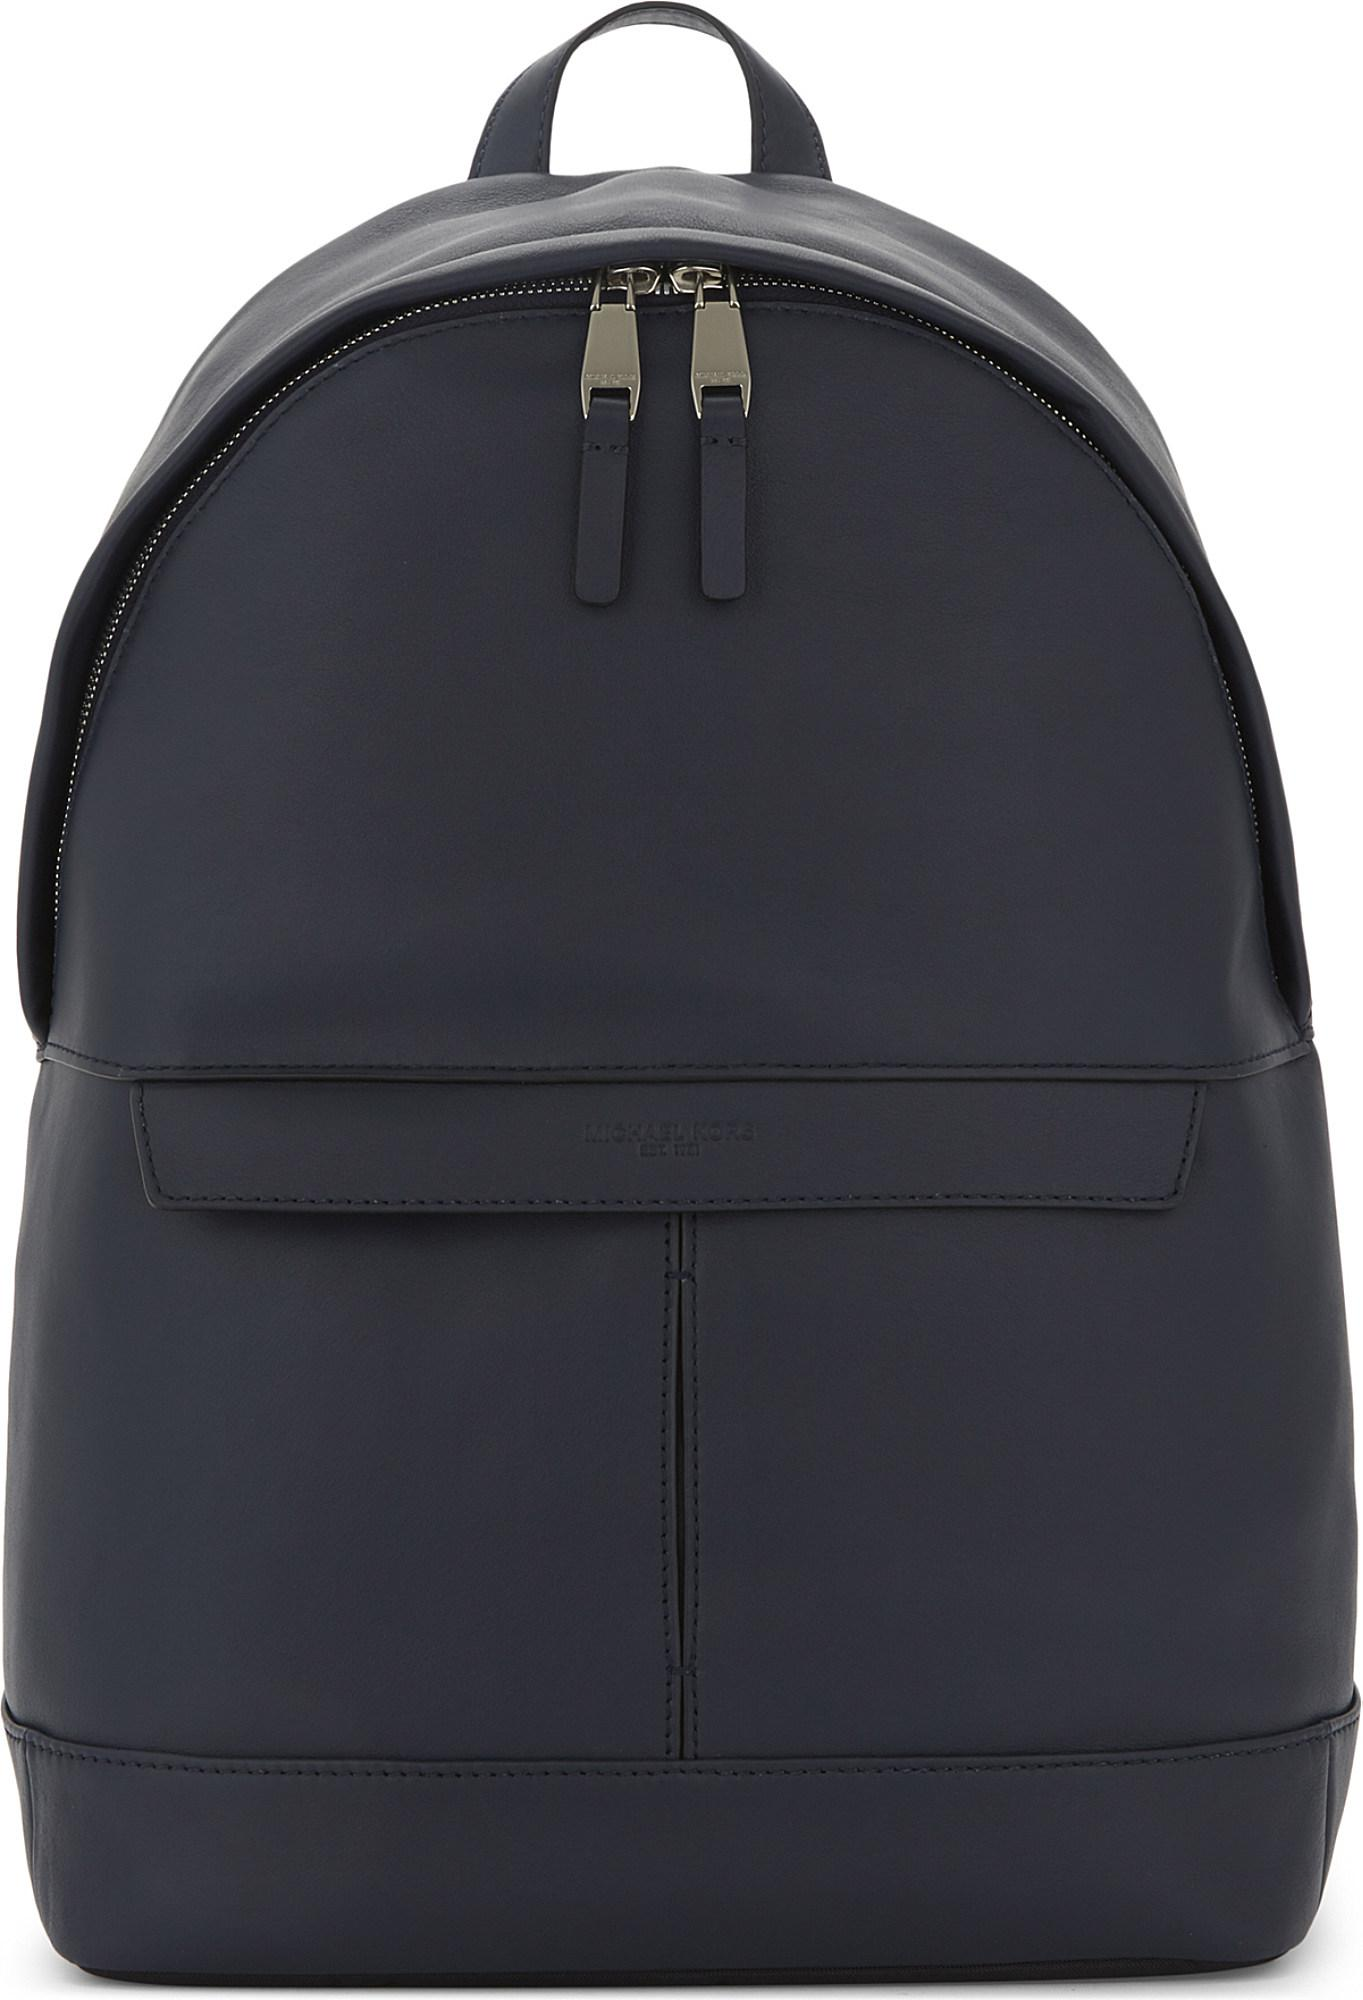 9b89362bb2fbf0 Lyst - Michael Kors Odin Smooth Leather Backpack in Blue